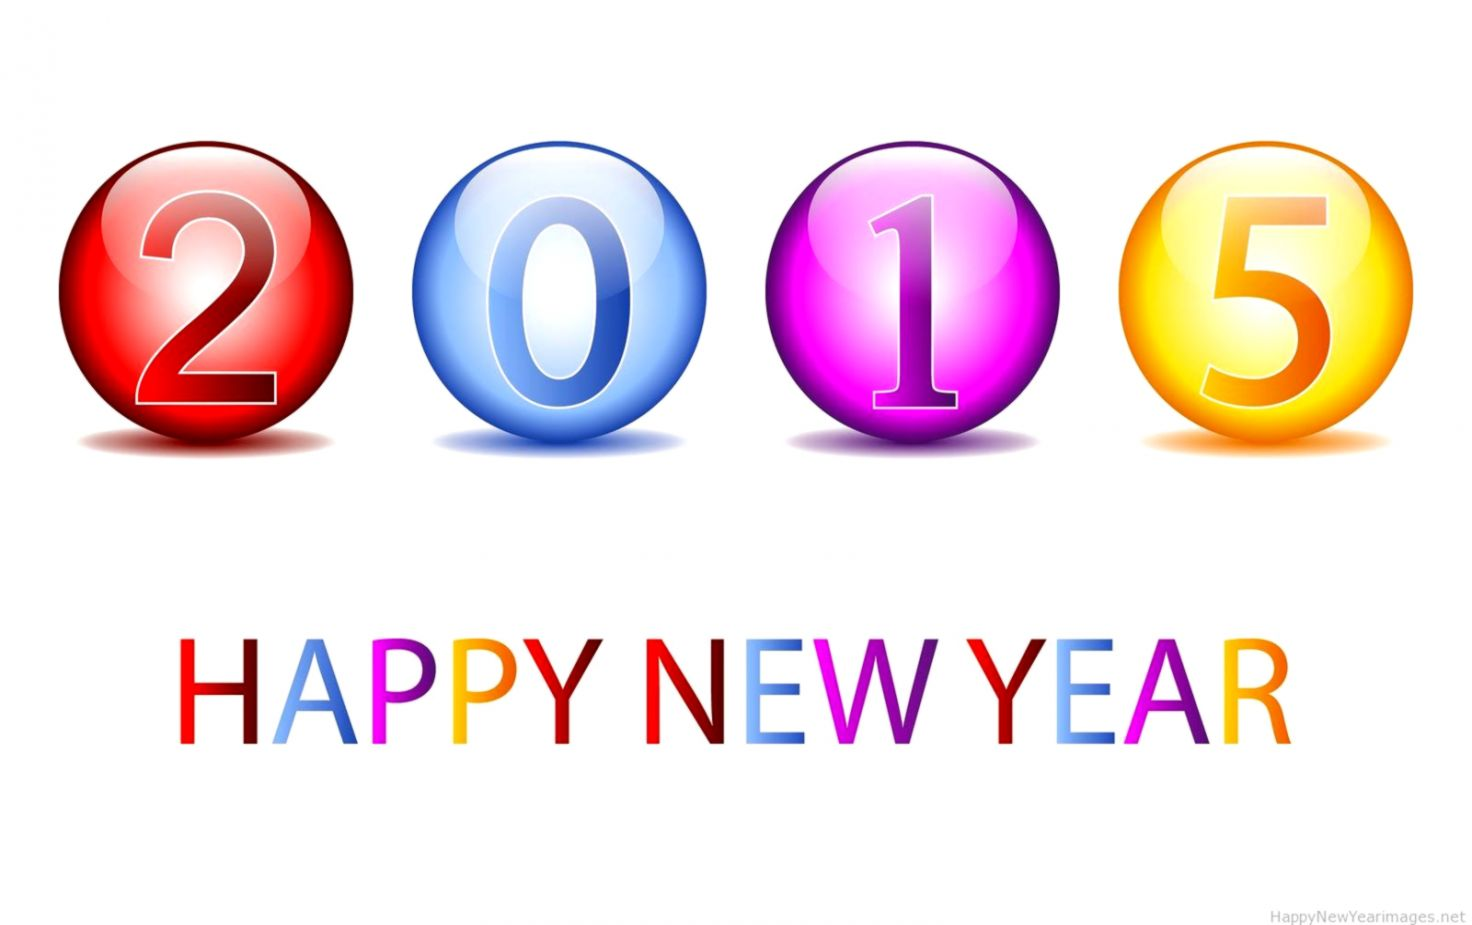 Happy New Year Clipart Free Wallpaper.